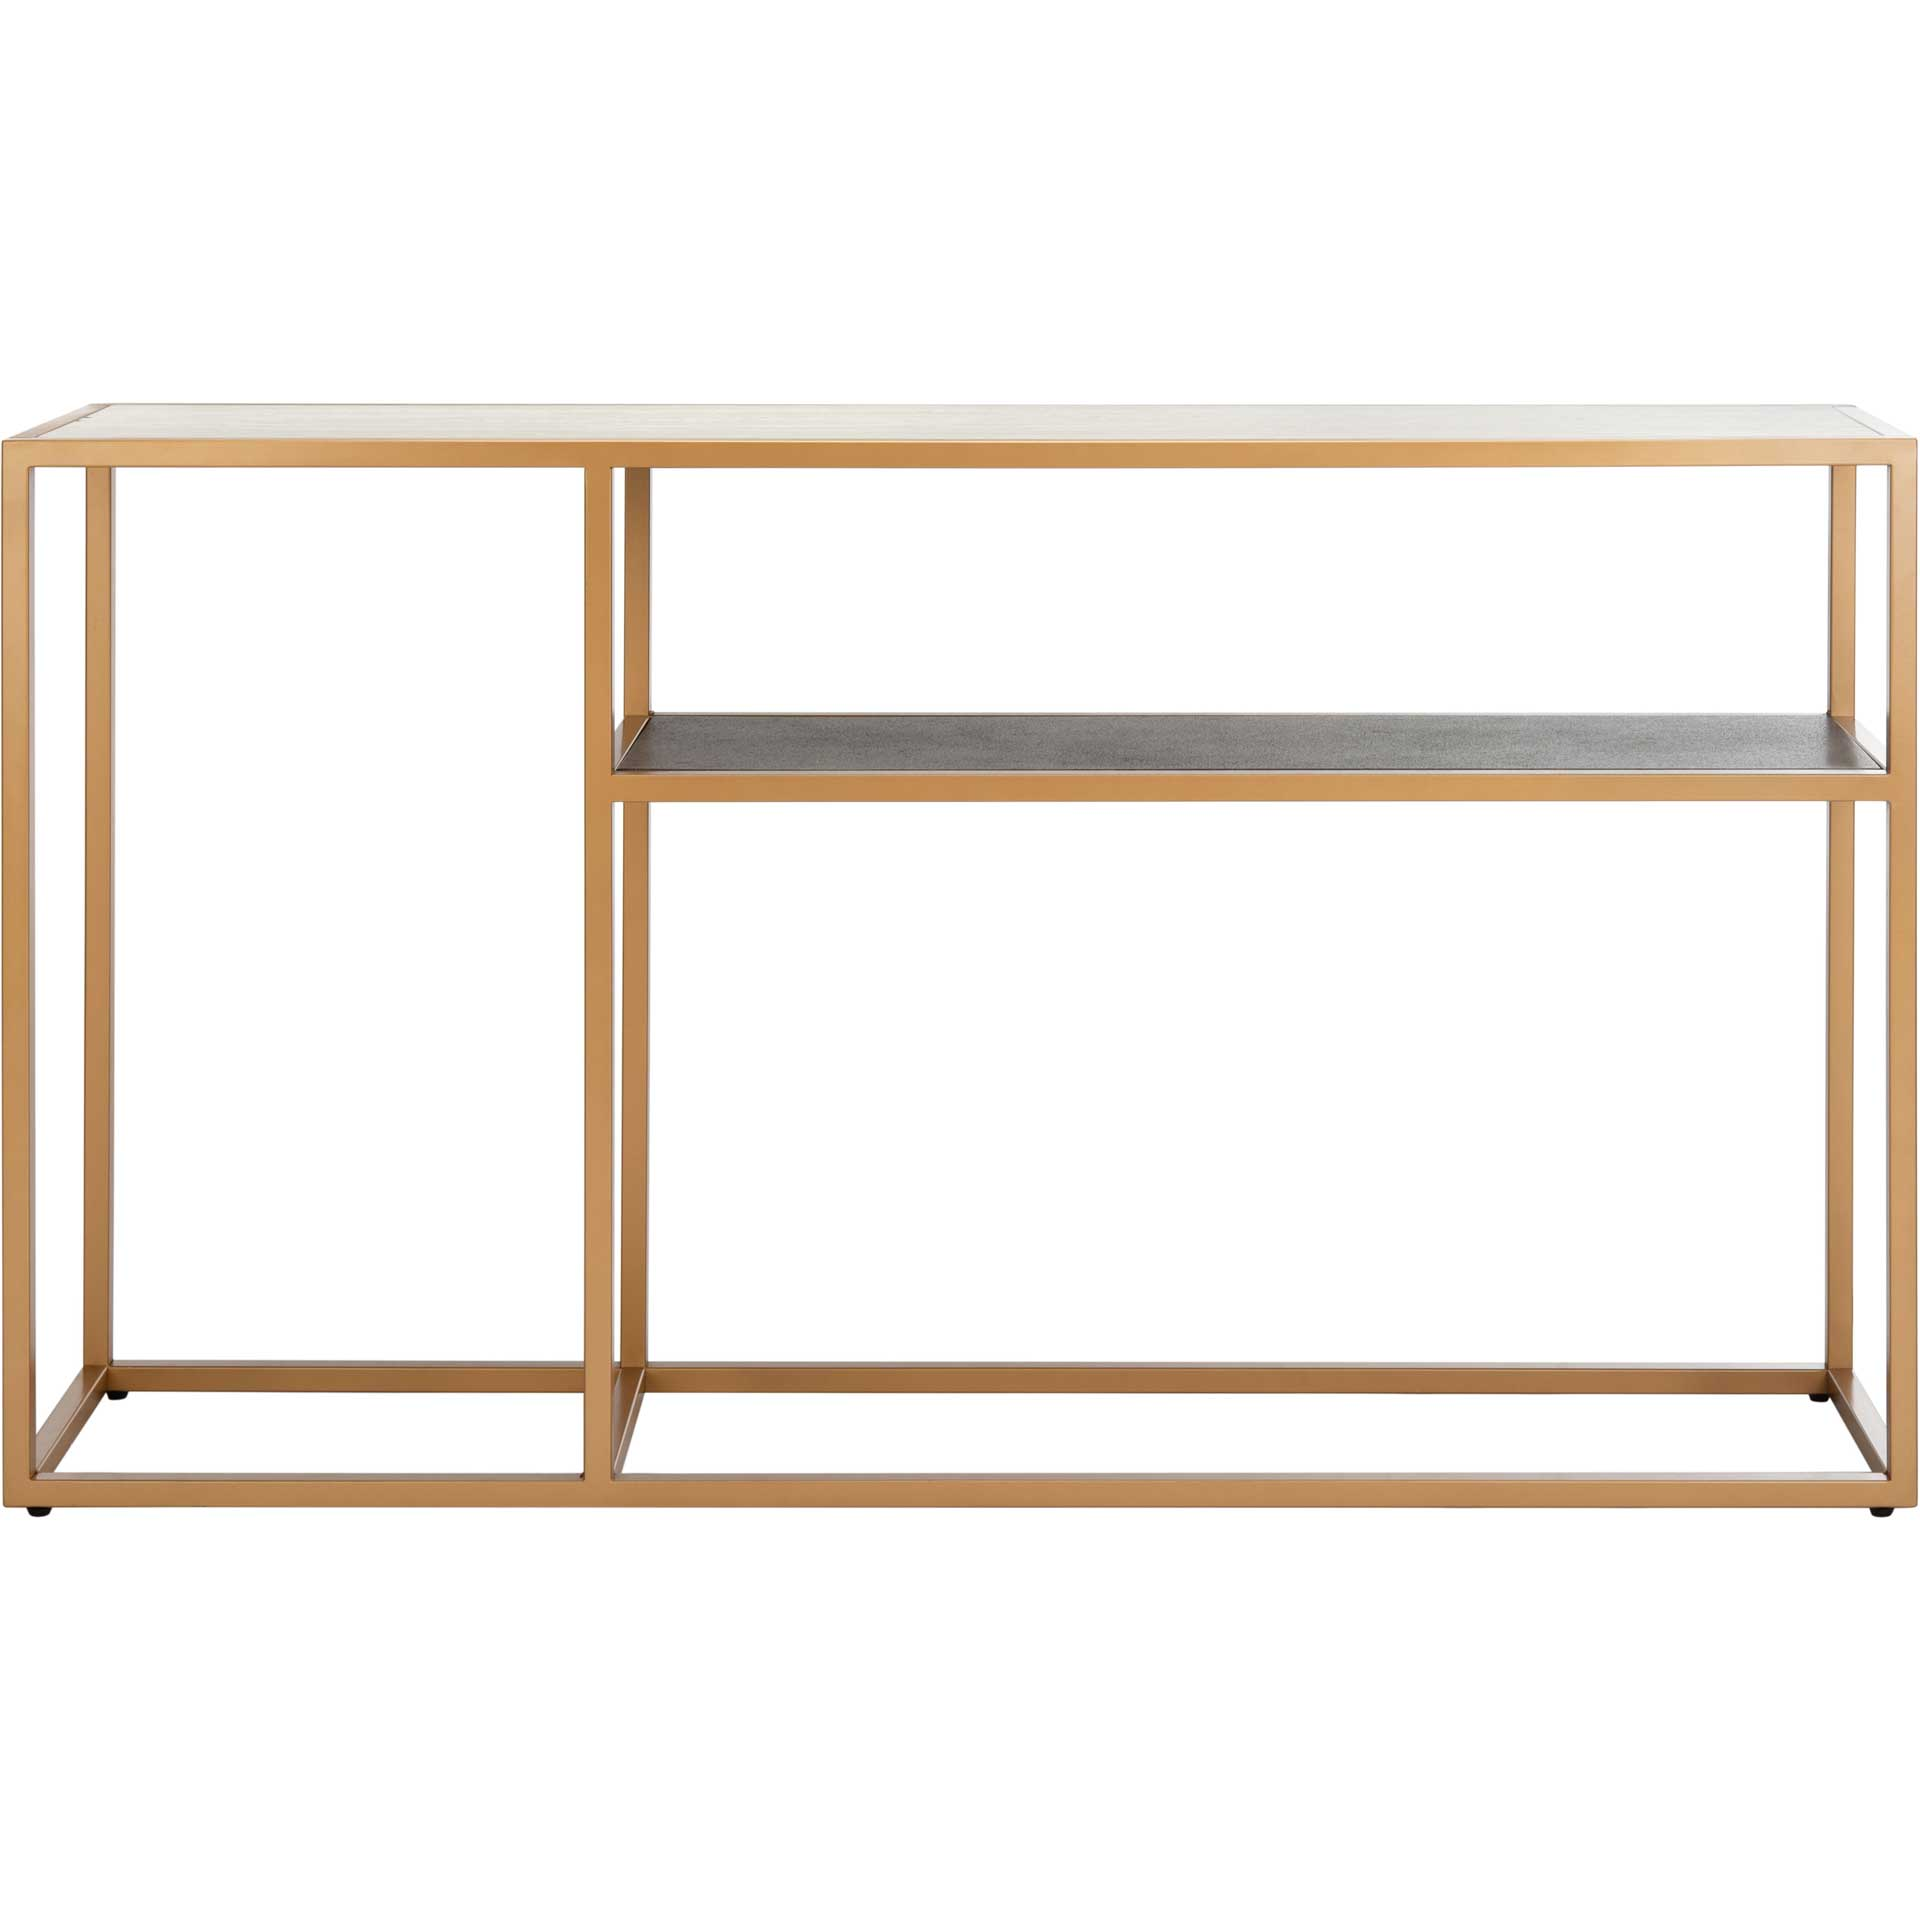 Octavia Console Table Multi/Gold